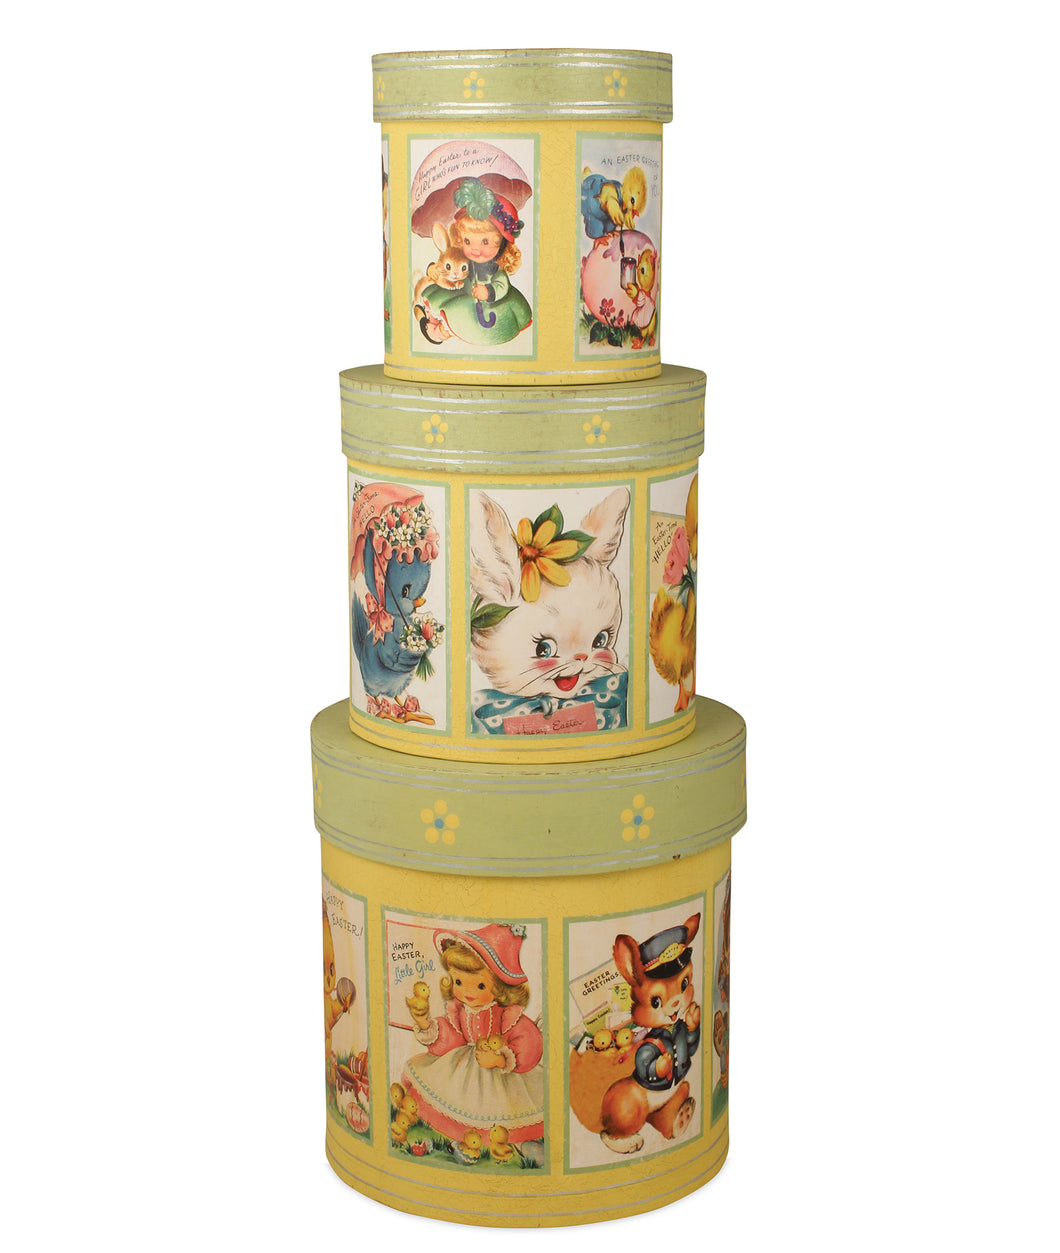 TP6155 - Retro Easter Nesting Boxes Set of 3